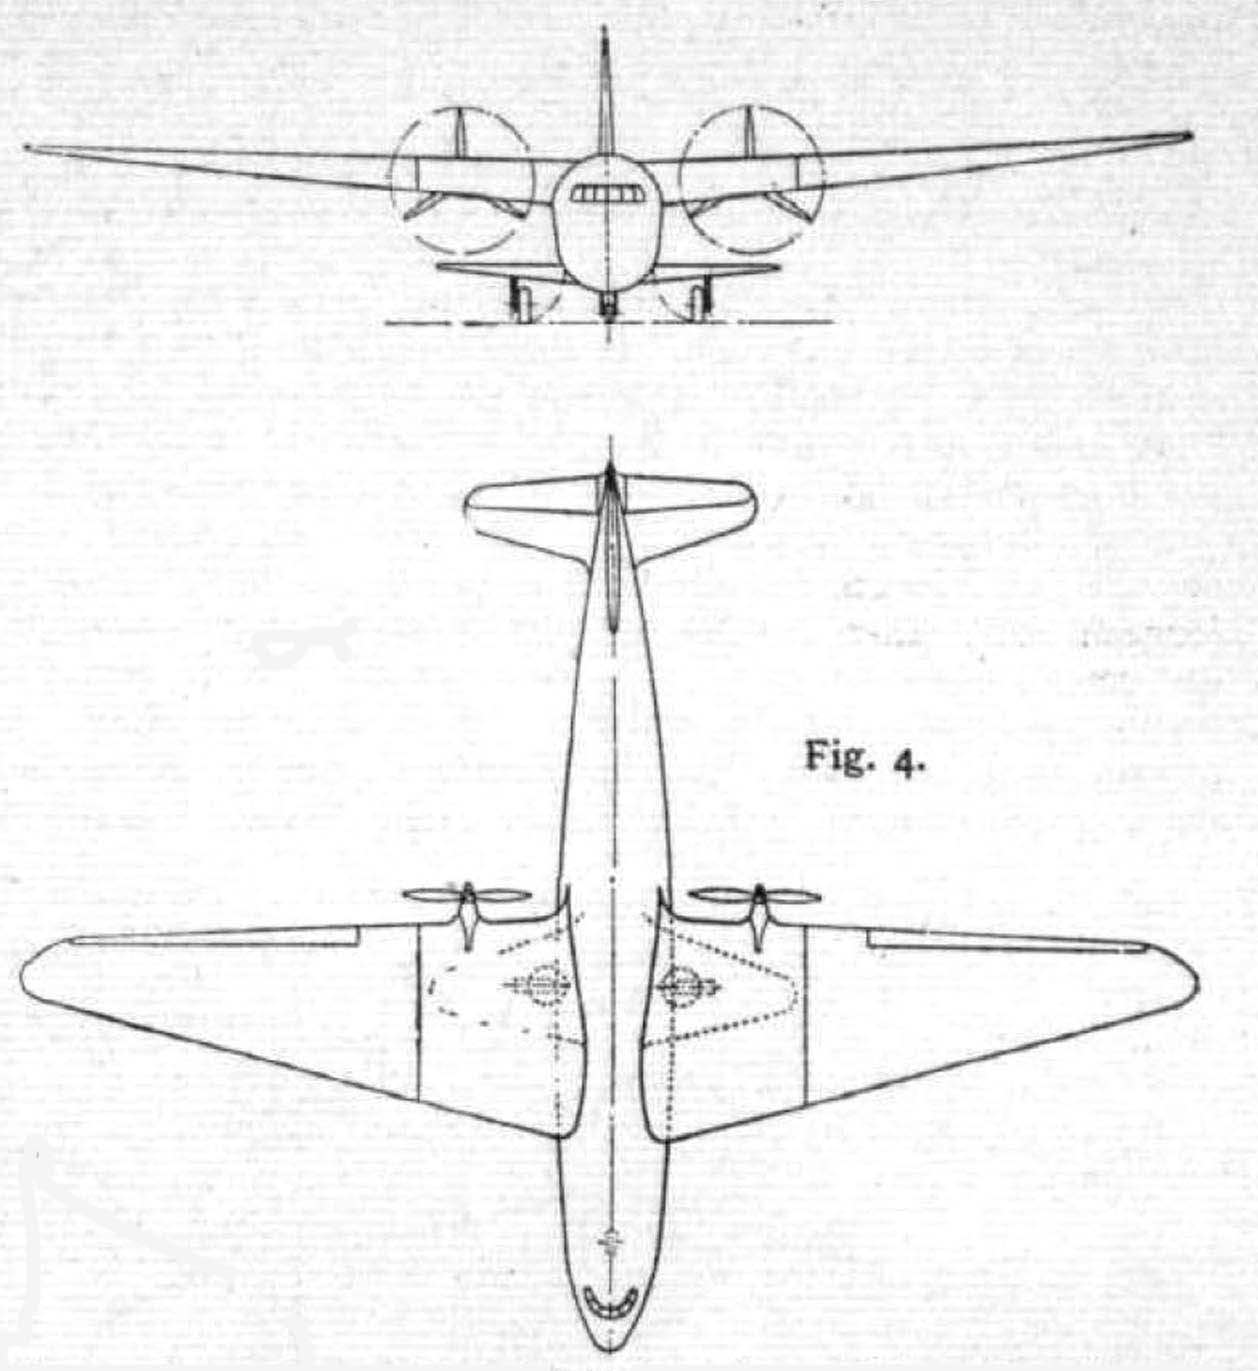 Aircraft 4 Stroke Cycle Diagram Trusted Wiring Diagrams Engine Flight 178 1940 The Engineer Two Diesel 6